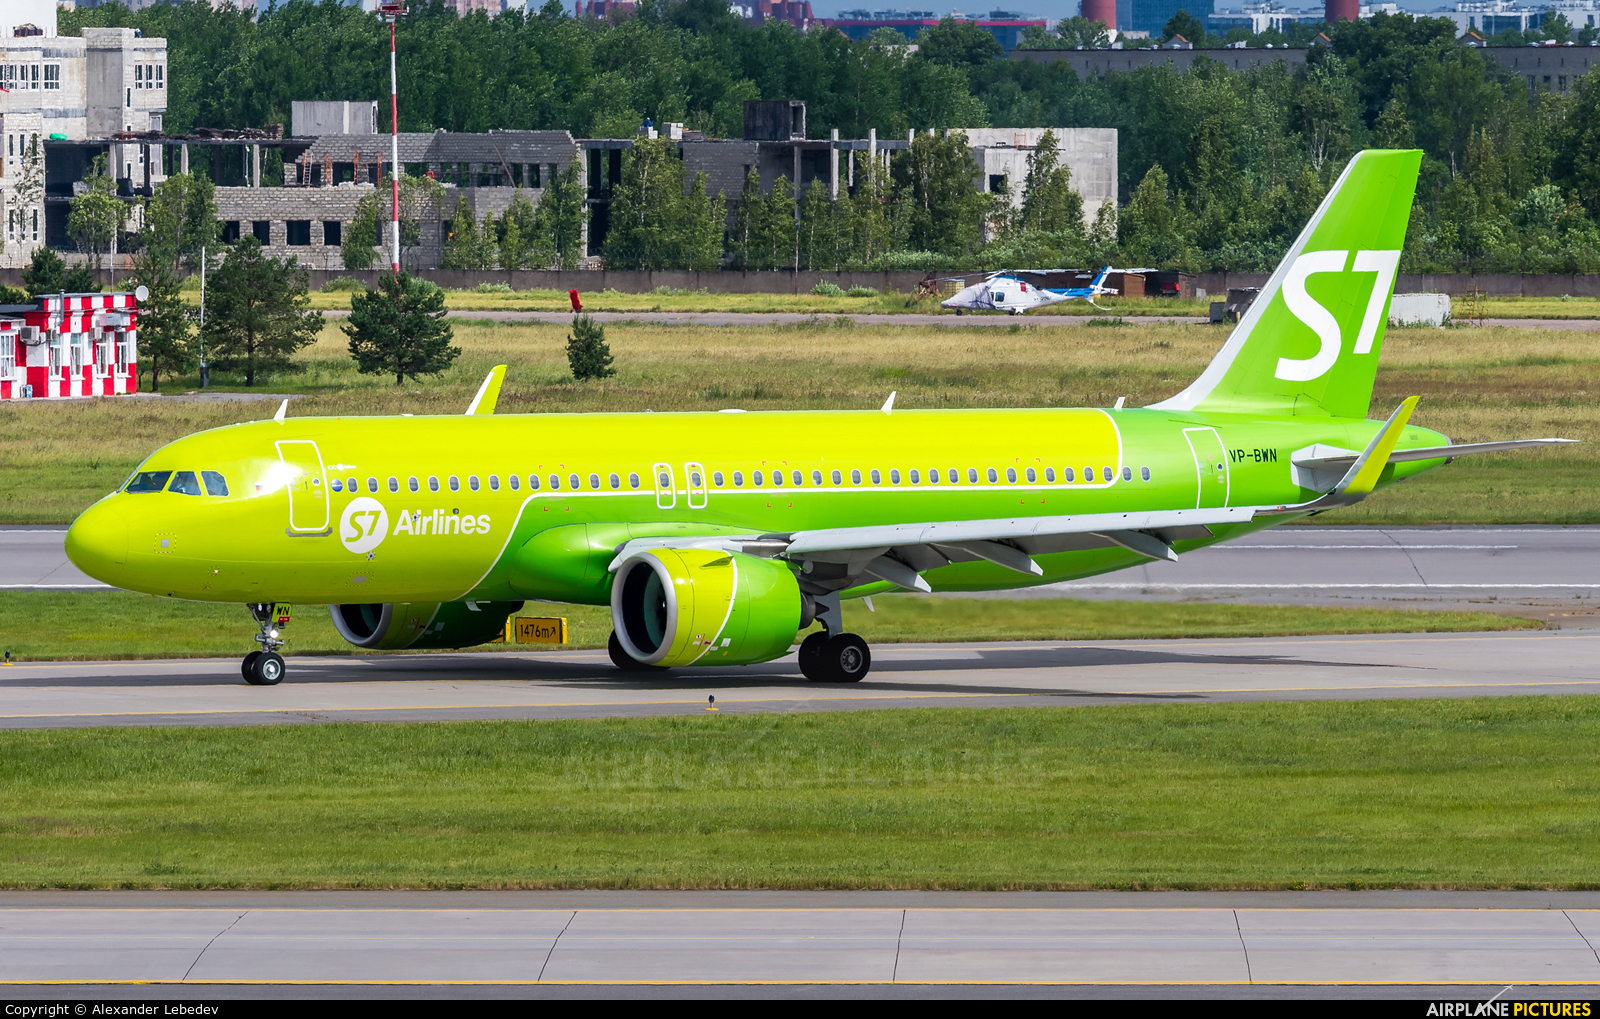 S7 Airlines VP-BWN aircraft at St. Petersburg - Pulkovo